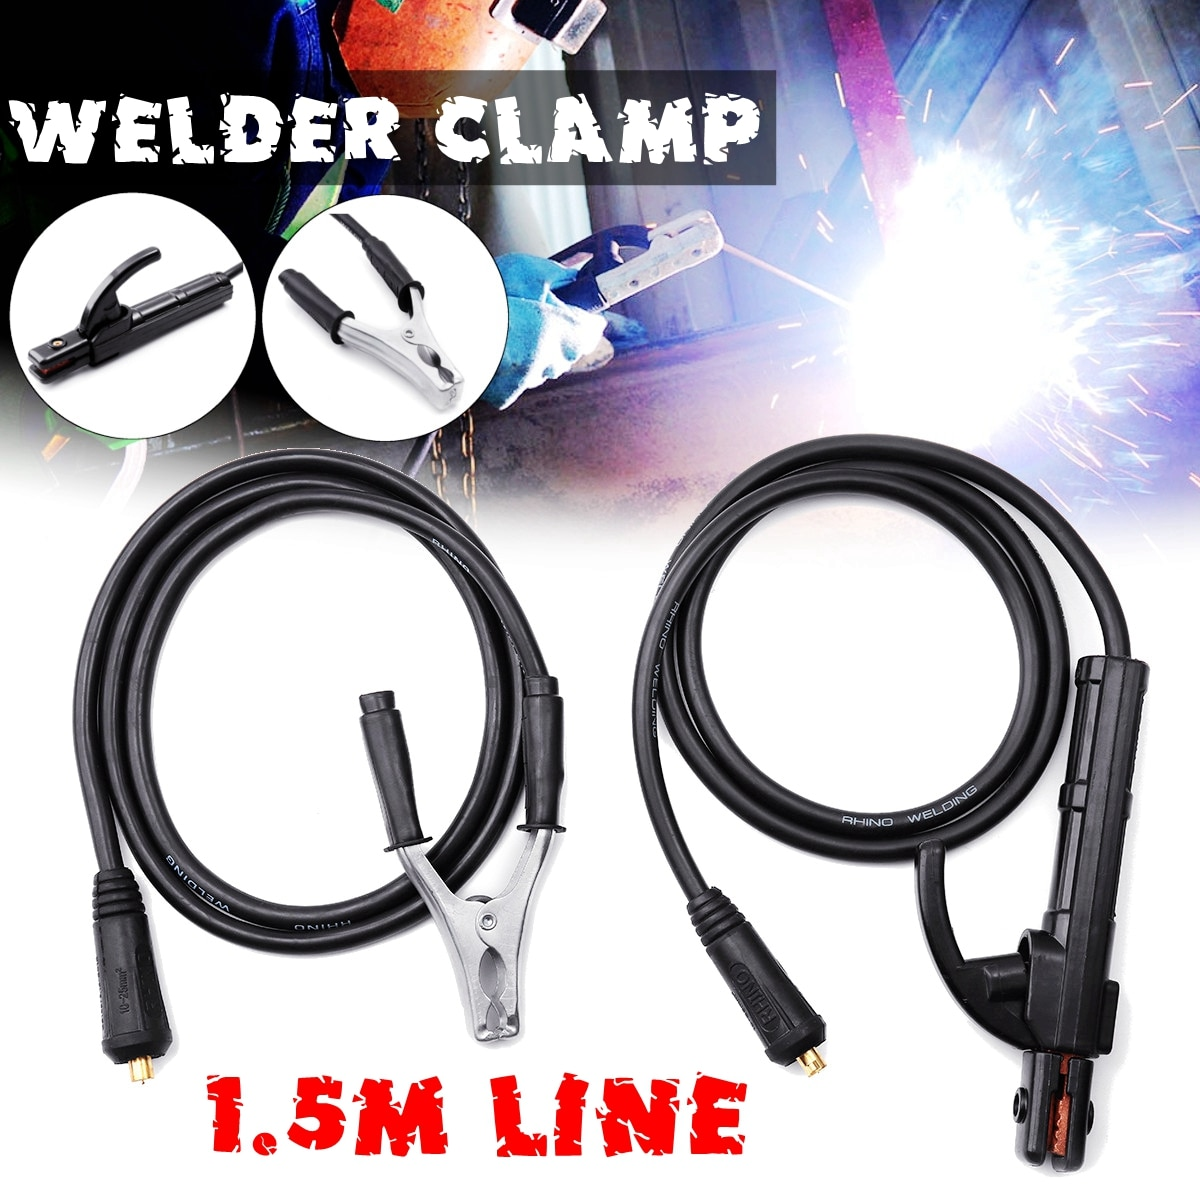 2 Pcs 300A 1.5M Electrode Holder Stick Welders /Ground Clamp Set  Welding Rod Stinger Clamping Tool